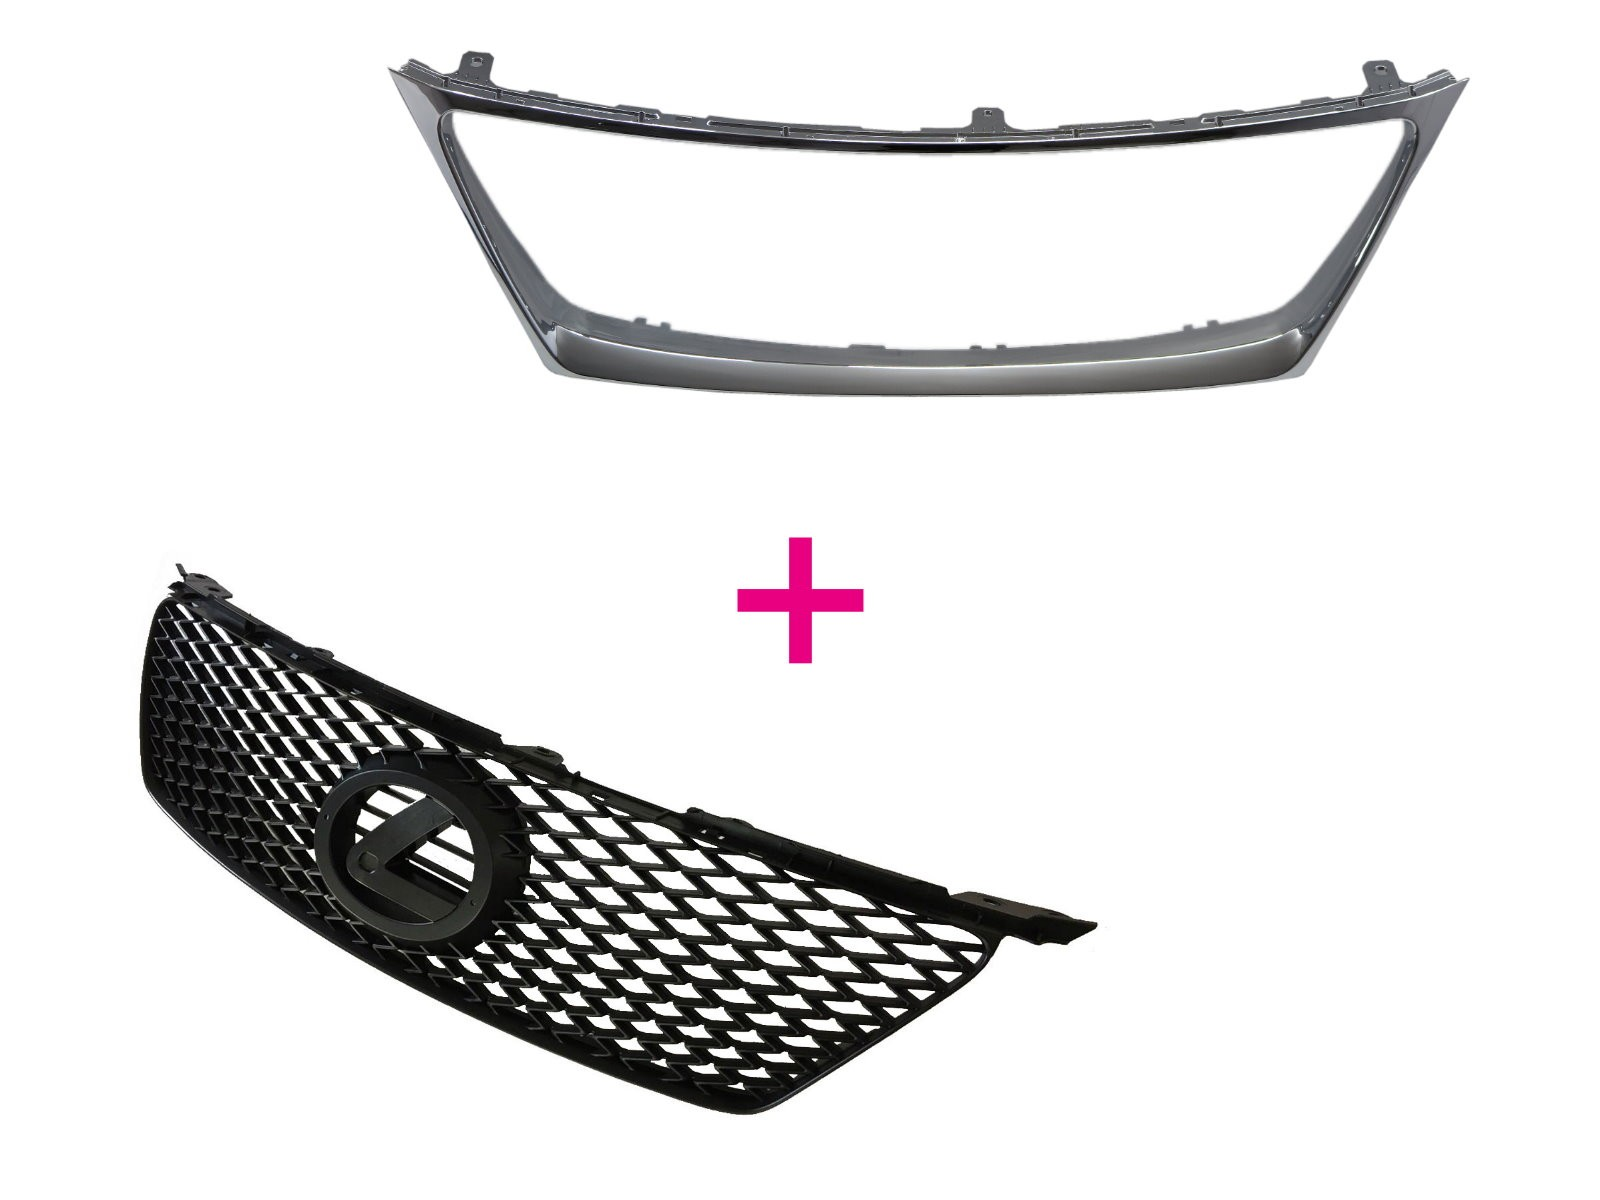 CrazyTheGod IS IS250/IS350/IS220D XE20 Second generation 2005-2008 PRE-FACELIFT Sedan 4D ISF Style GRILLE/GRILL Matt Black V2 for LEXUS